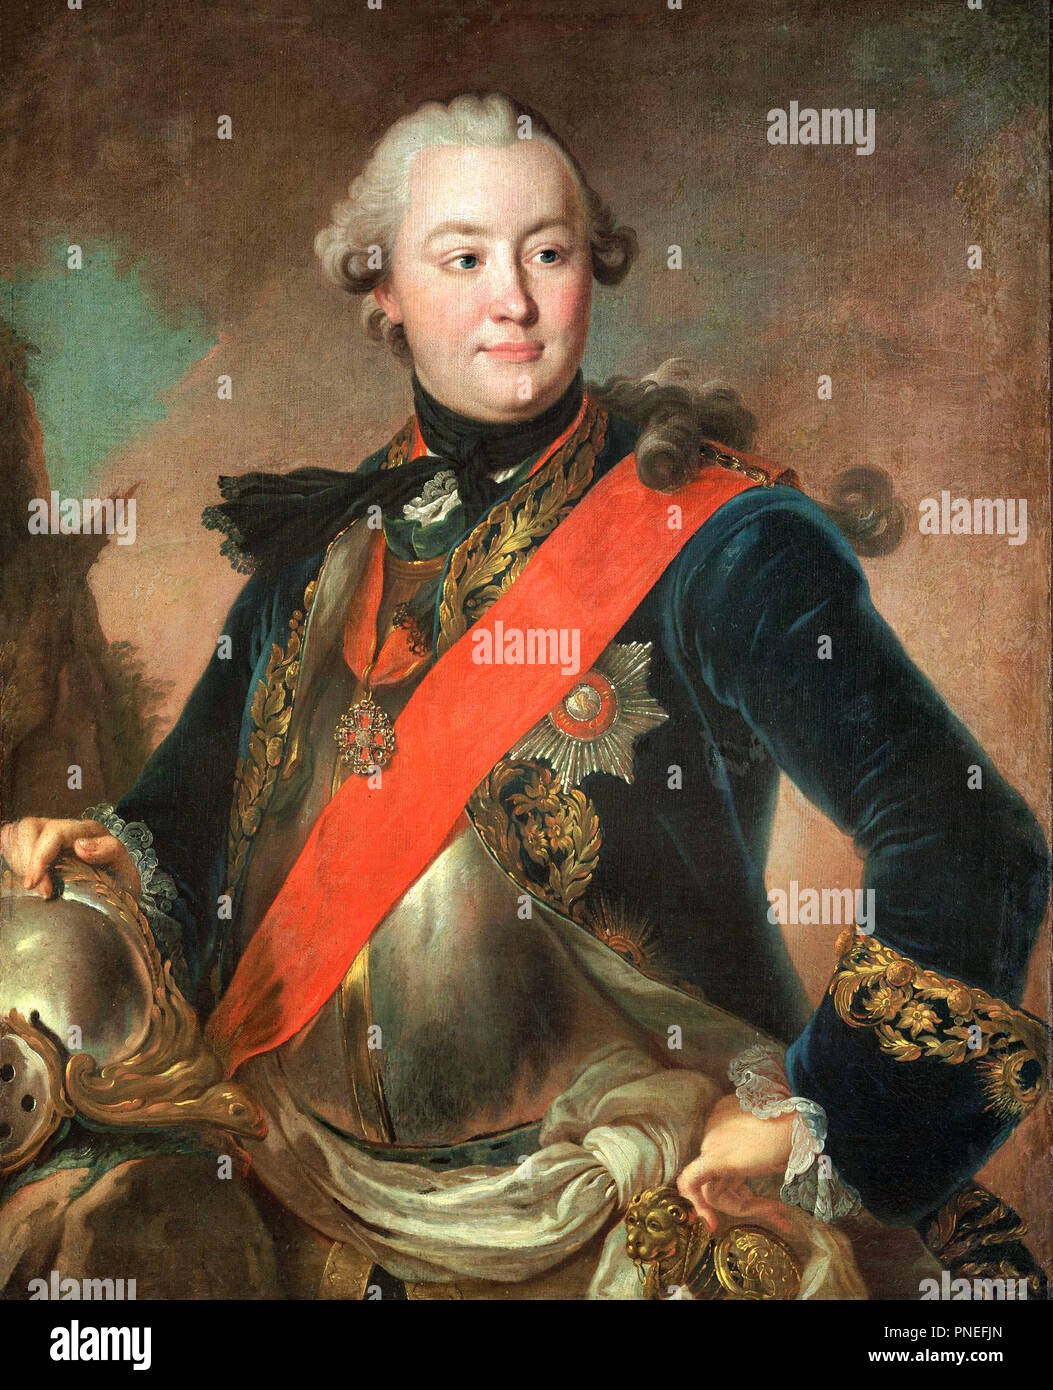 Portrait of Grigory Orlov (1734-1783) - Fyodor Rokotov , circa 1762. Count Grigory Grigoryevich Orlov was the favorite of Empress Catherine the Great of Russia - Stock Image